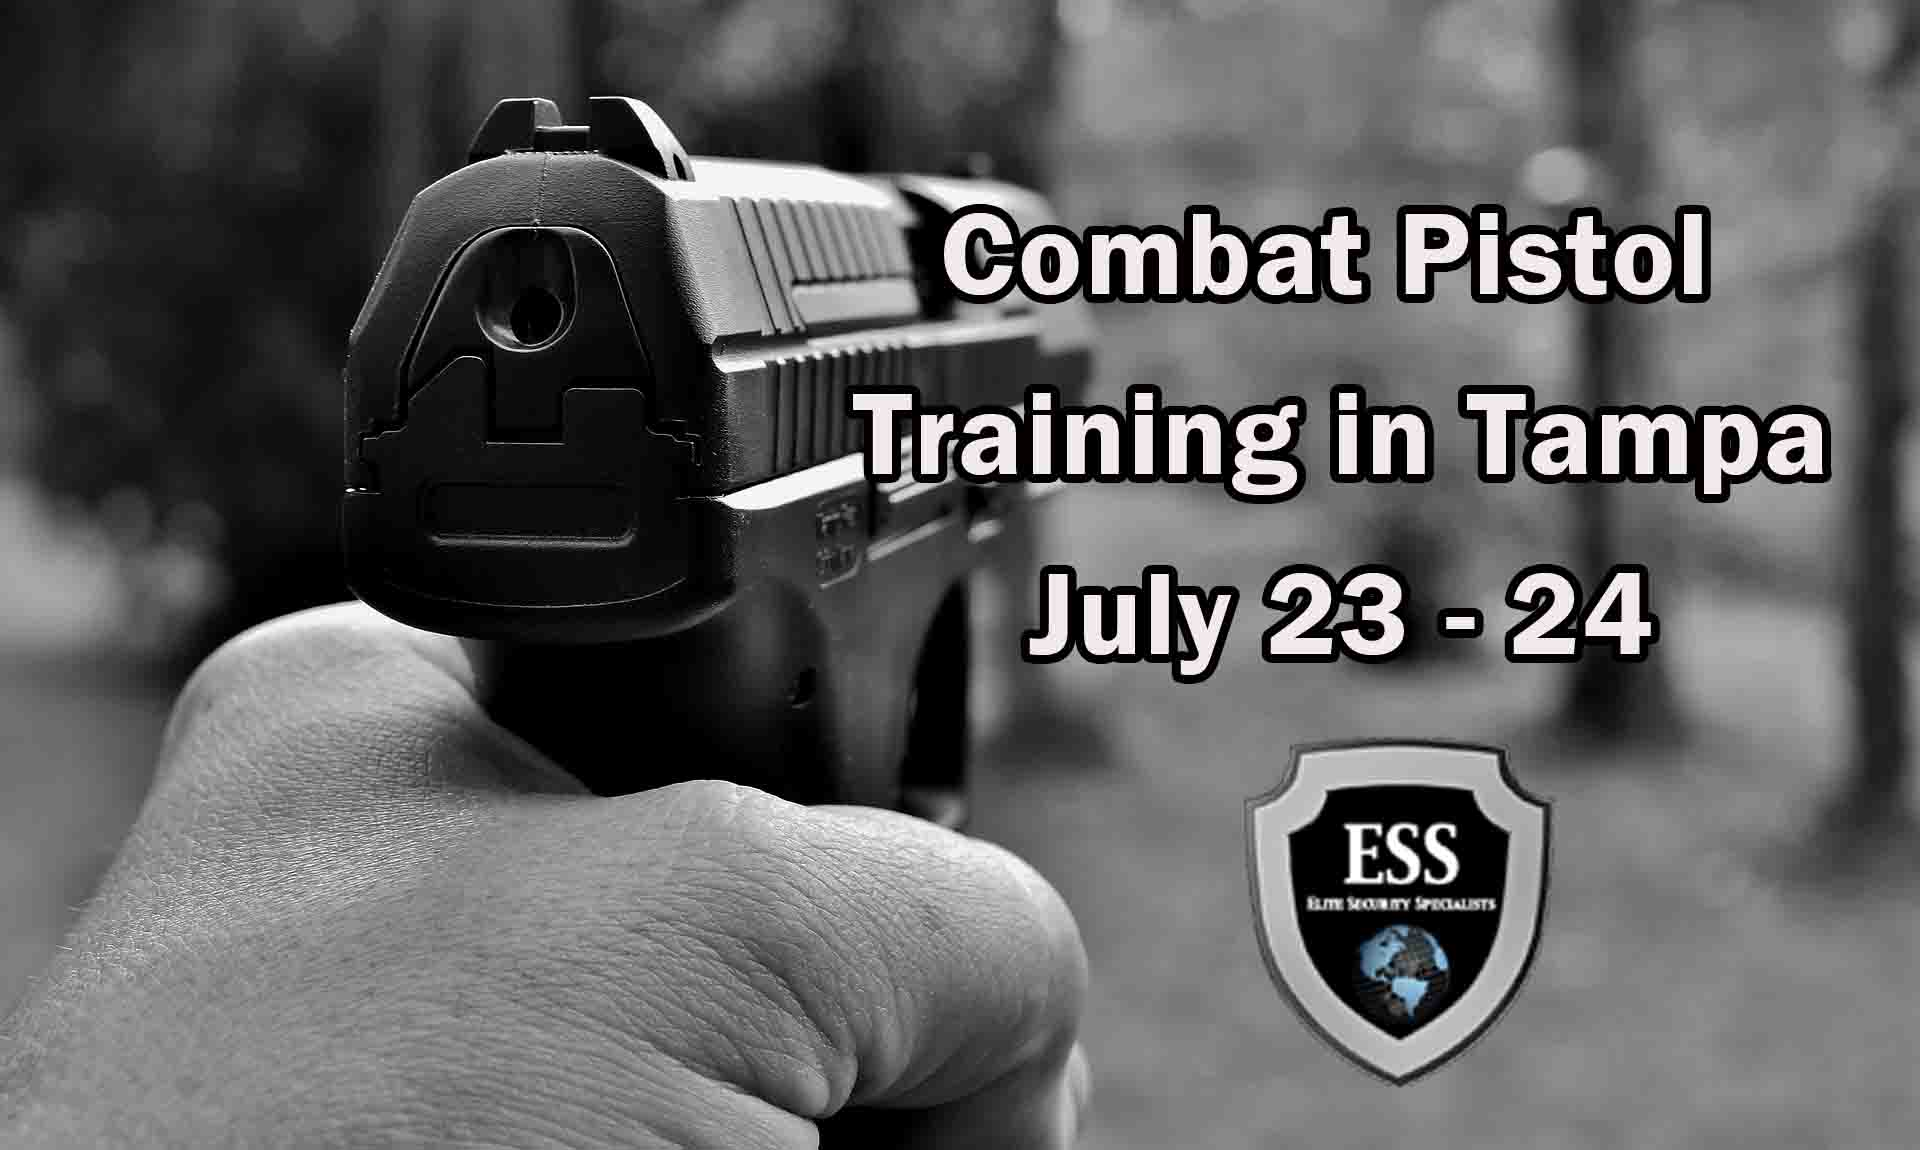 Combat Pistol Training in Tampa JULY